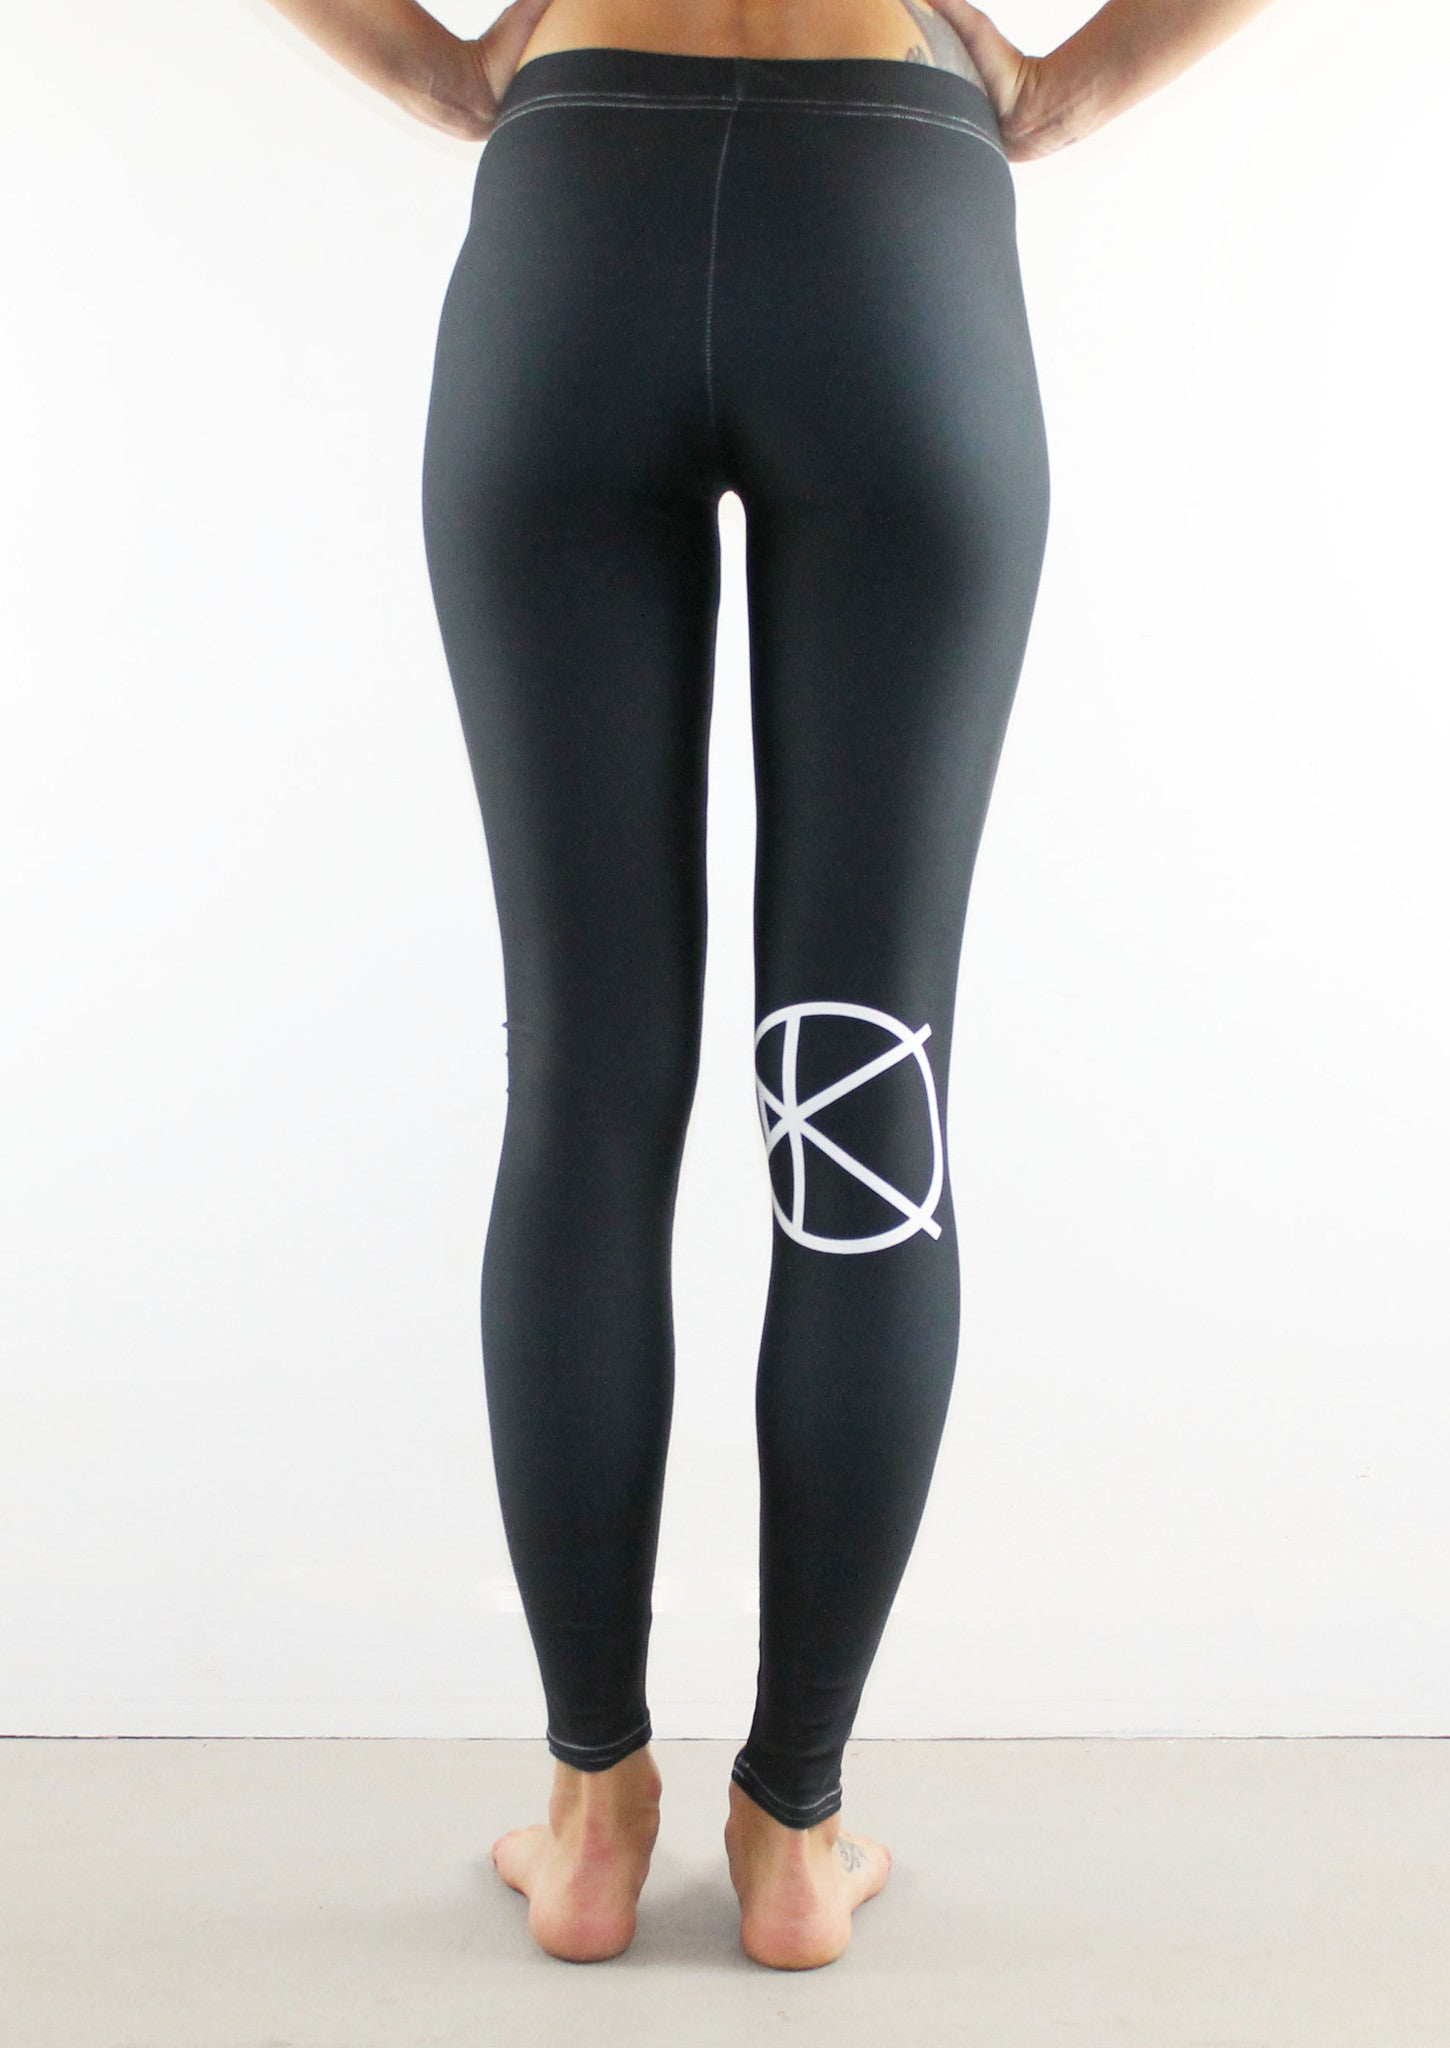 KOWASA Leggings // White on Black